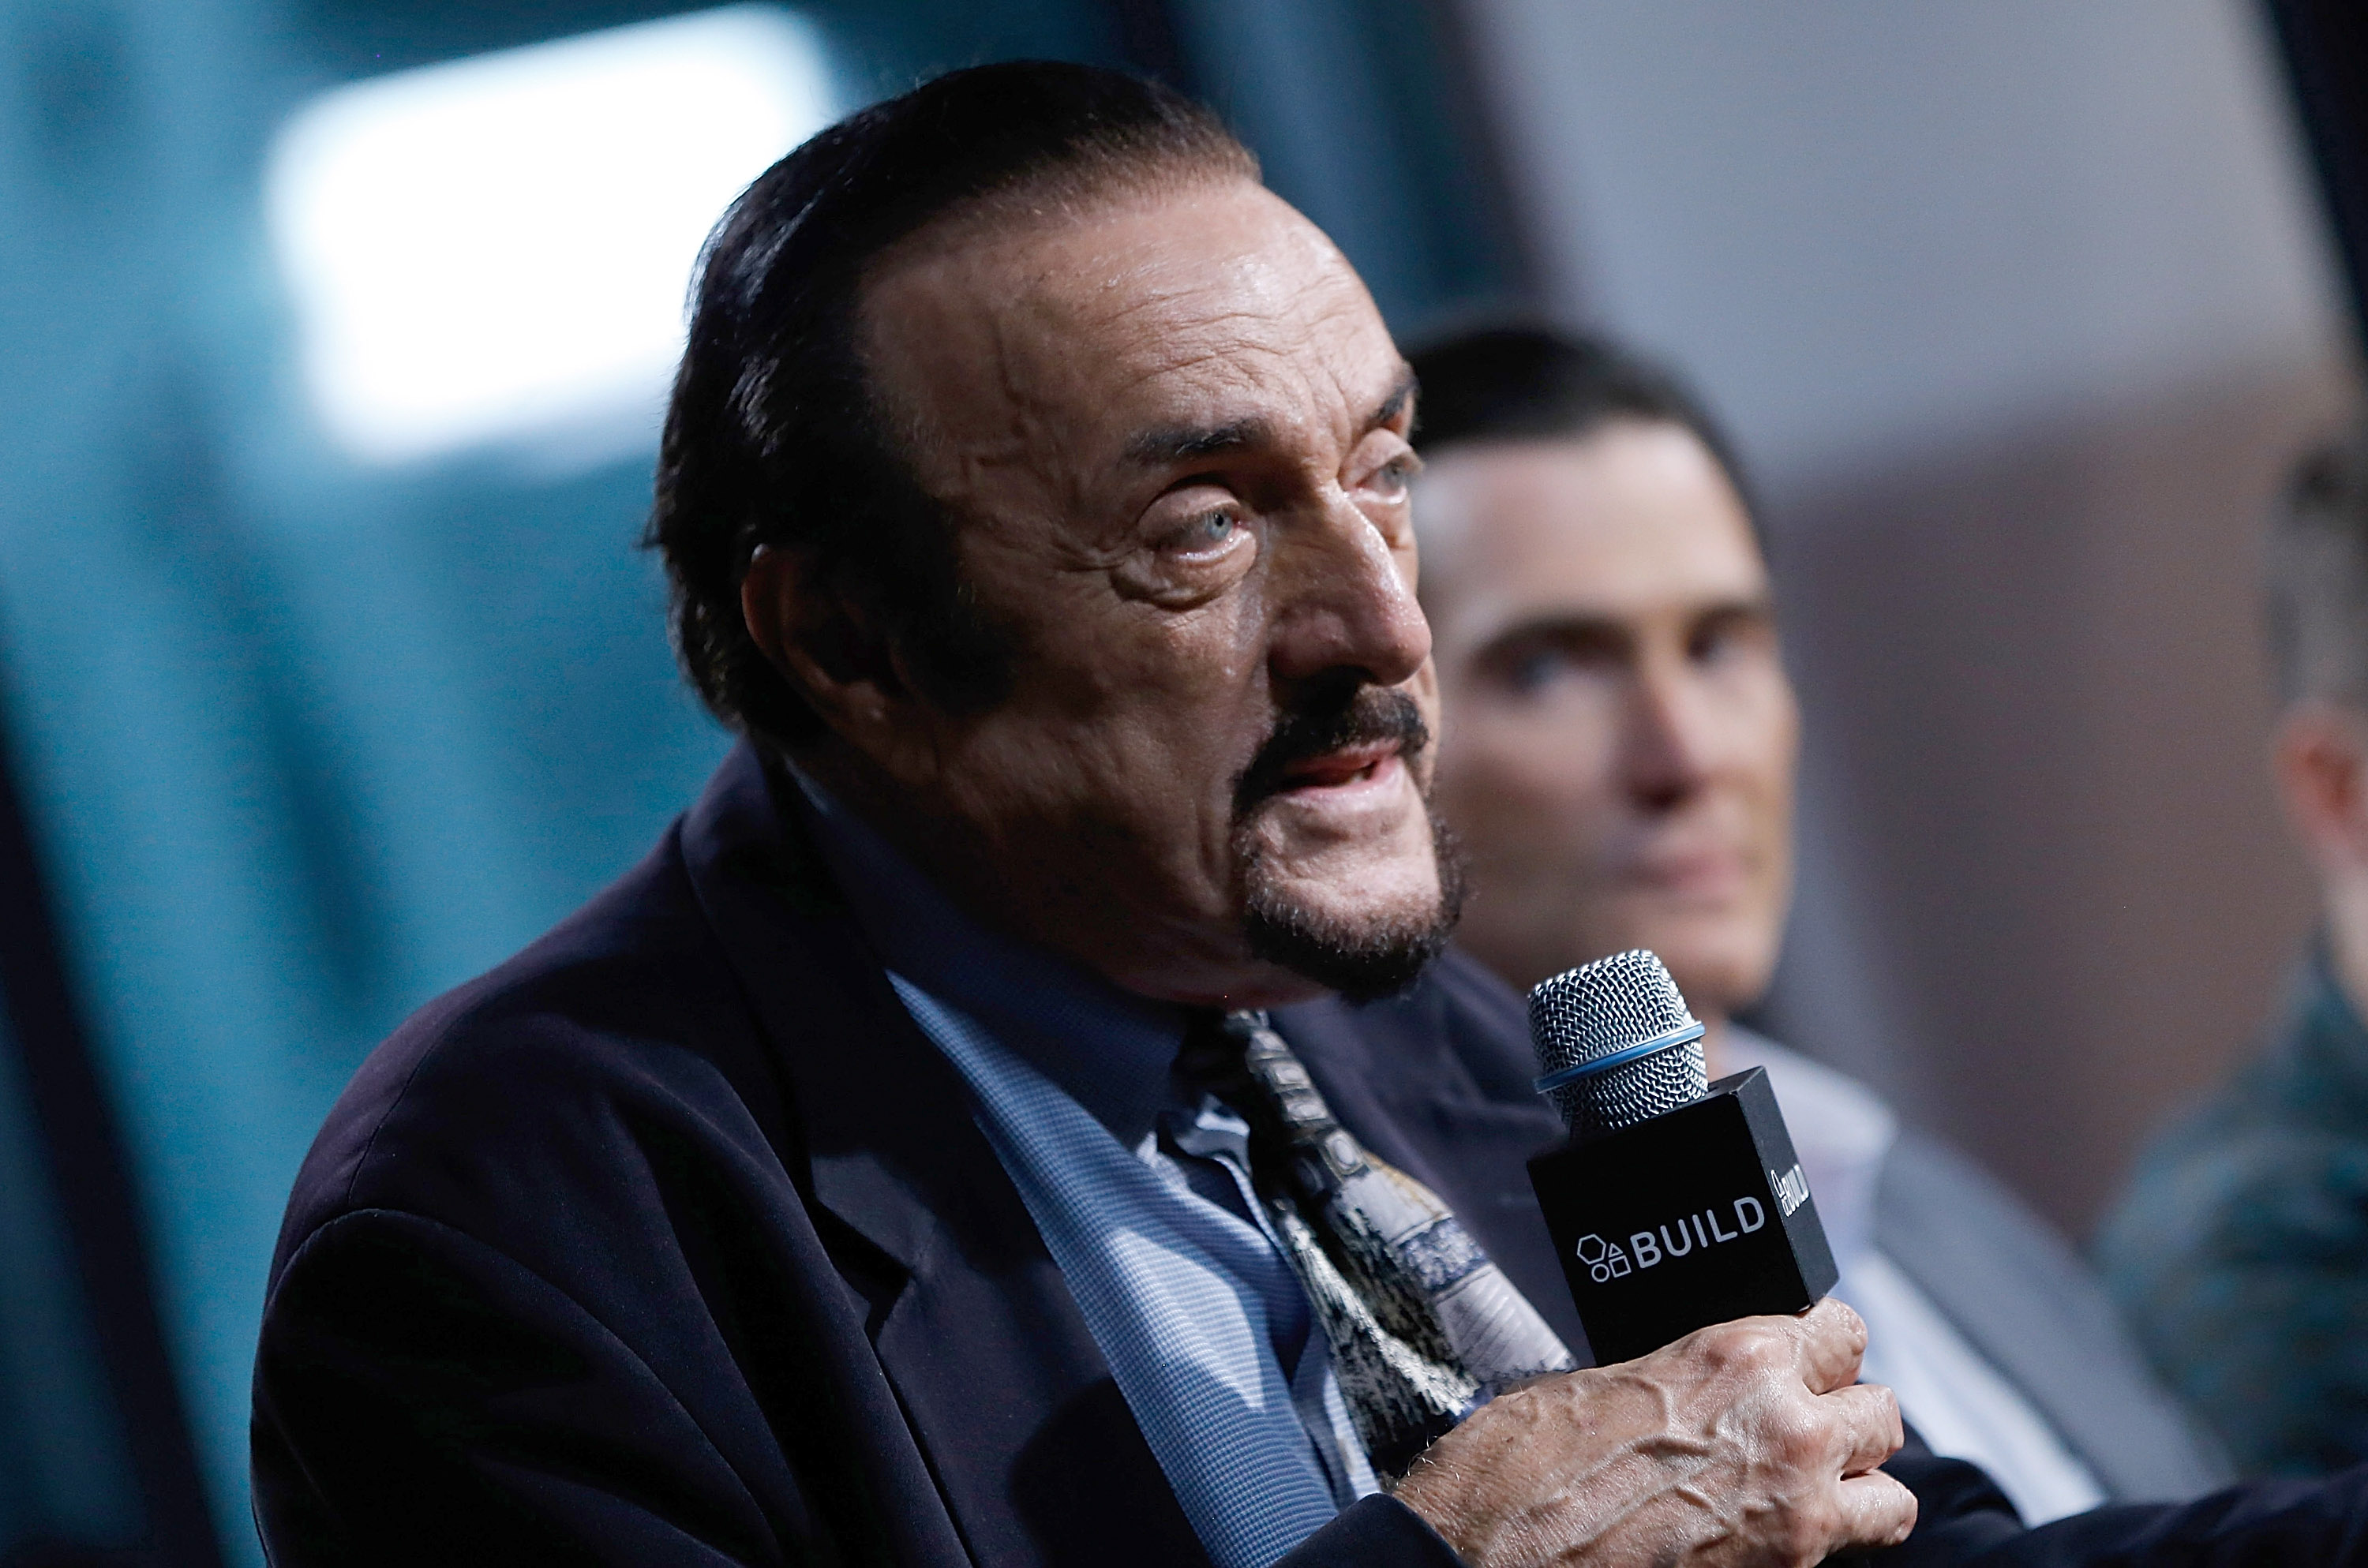 Philip Zimbardo defends the Stanford Prison Experiment, his most famous work